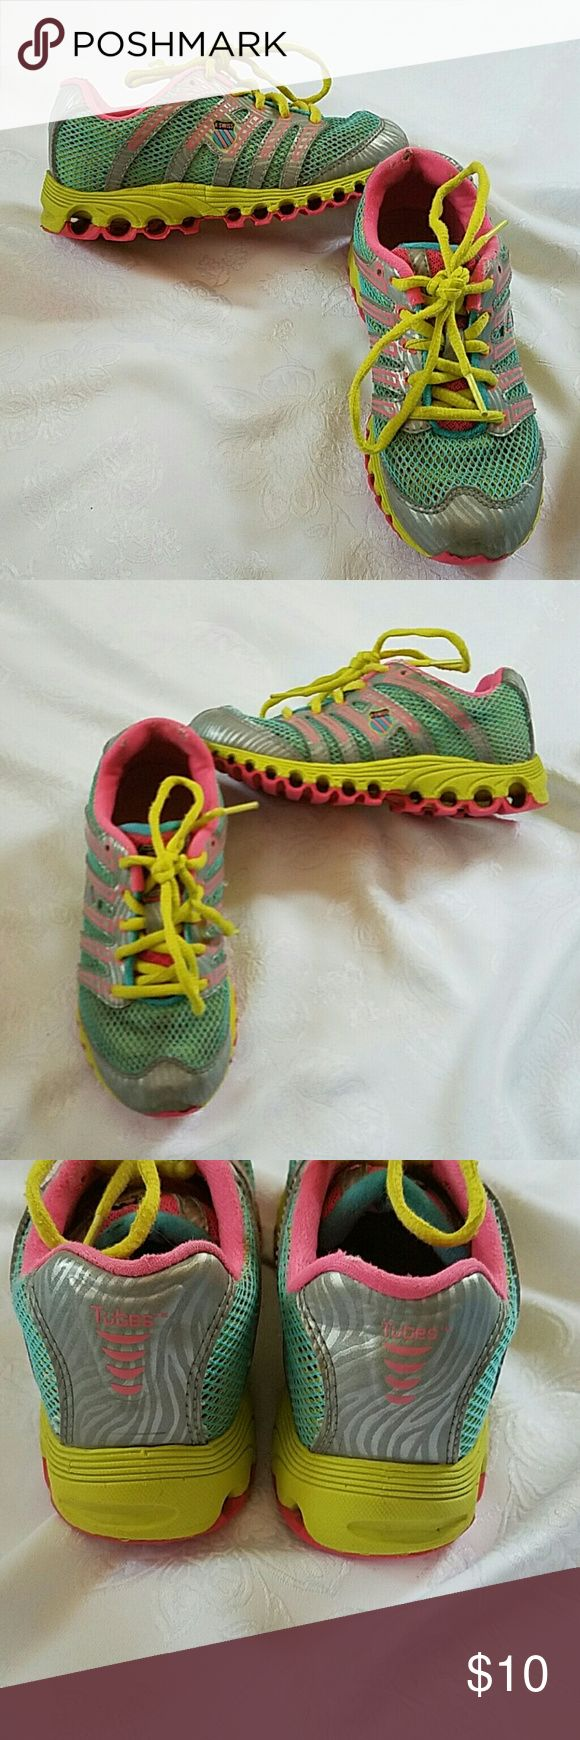 K-SWISS TENNIES Bright and colorful little girl tennis shoes. In great condition except for some mild wearing of fabric at the heal as can be seen in photos. K-Swiss Shoes Sneakers